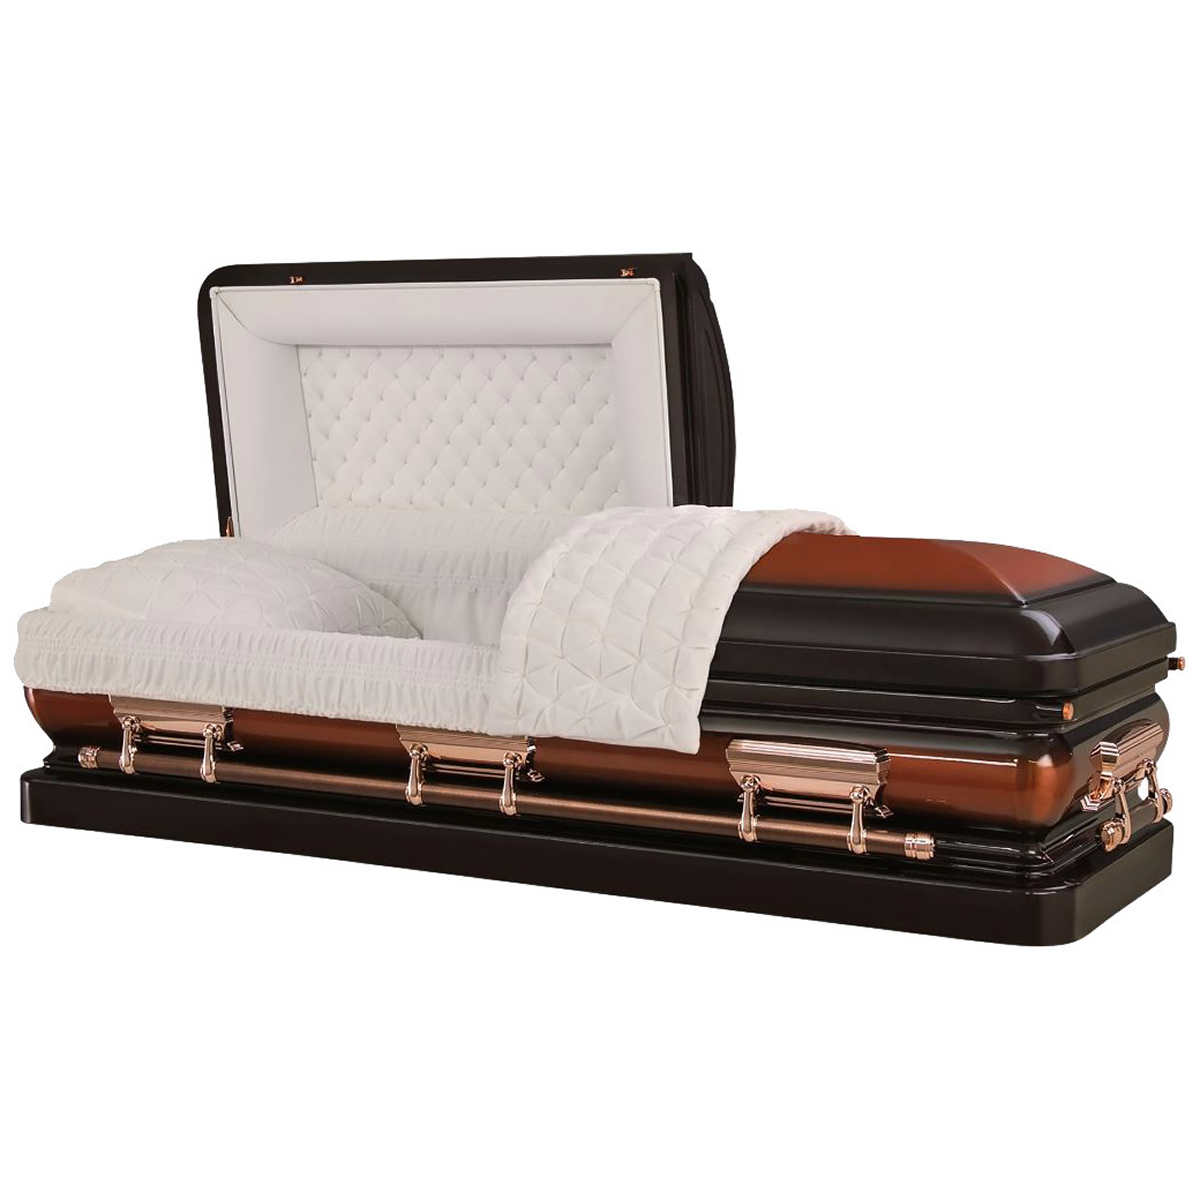 MUST READ THIS IMPORTANT INFORMATION BEFORE PURCHASING A CASKET